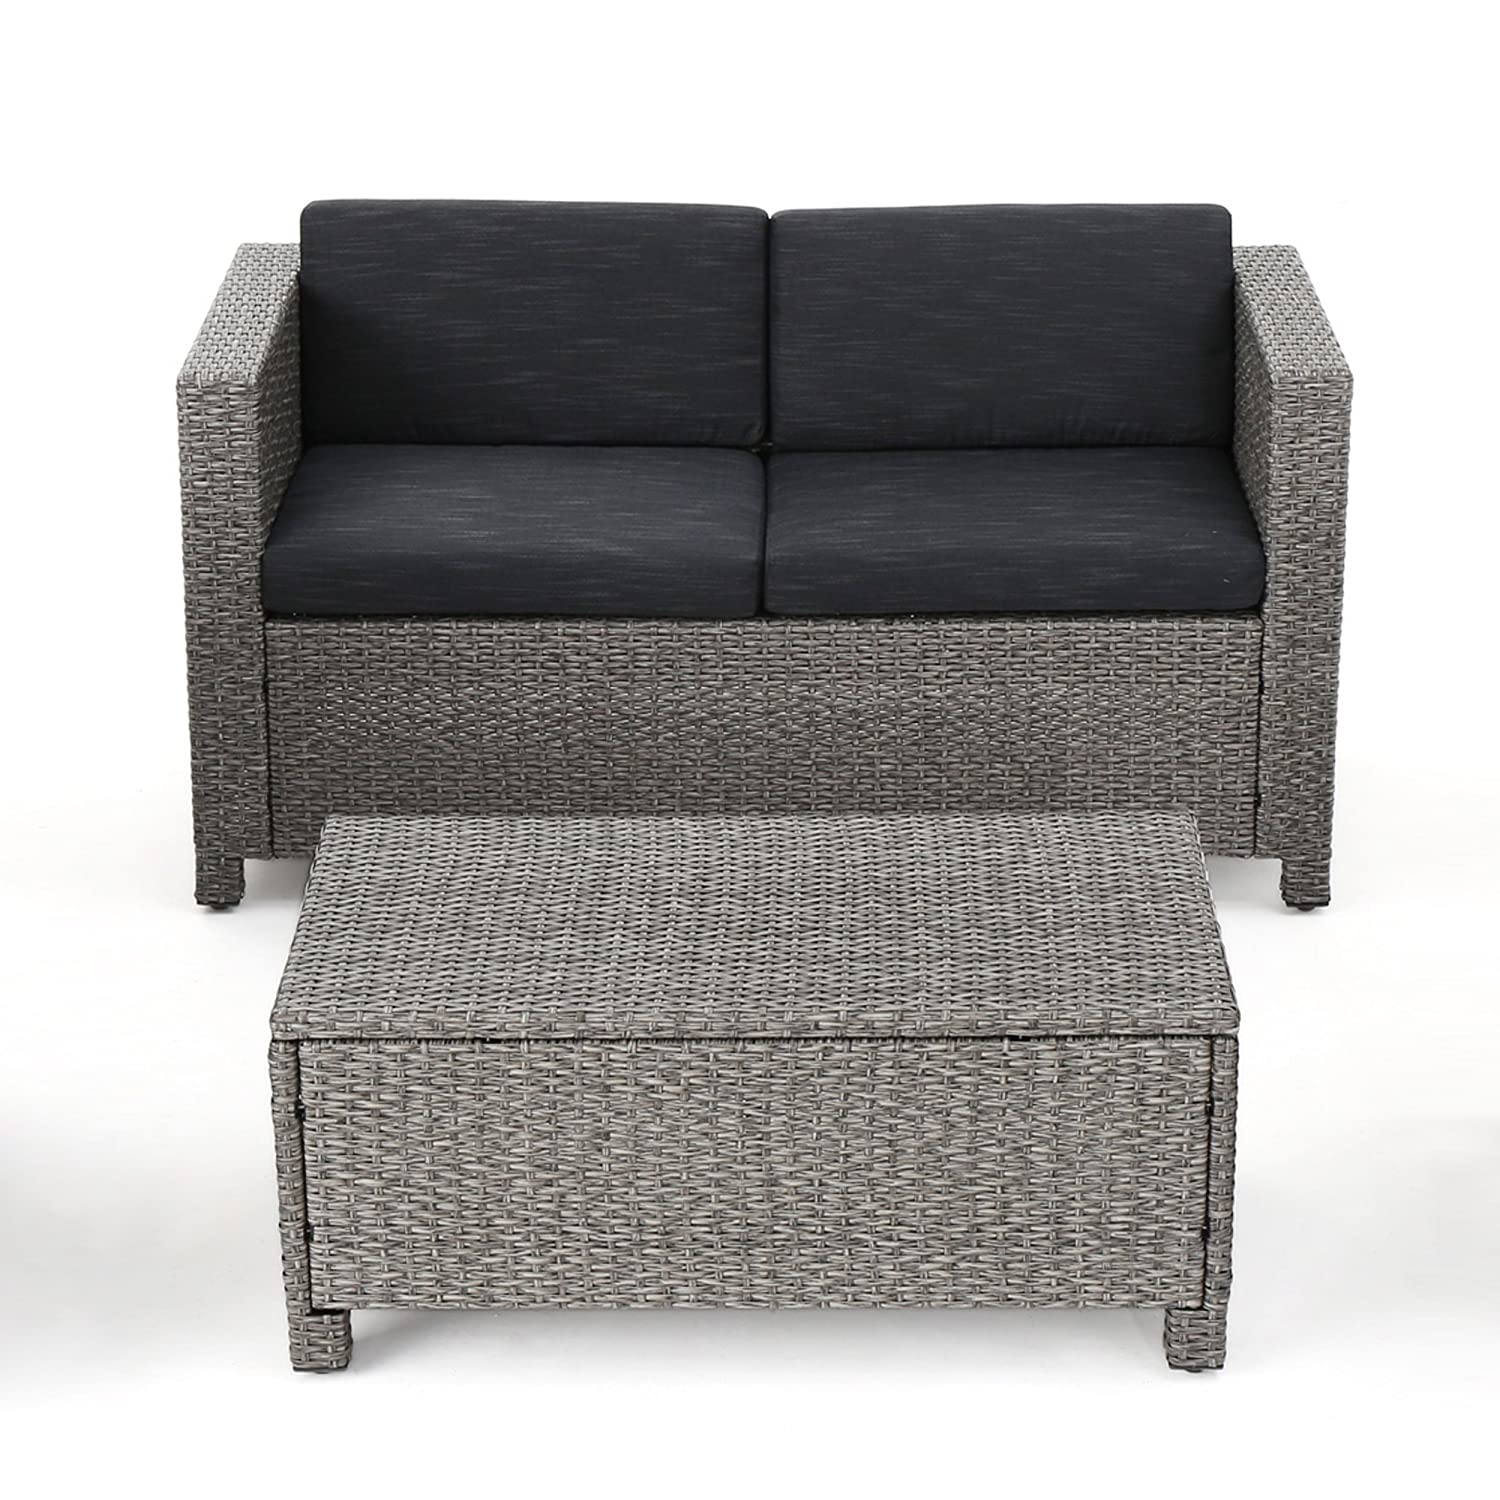 Cony Outdoor Wicker Loveseat and Coffee Table Set, Mixed Black with Dark Grey Cushions